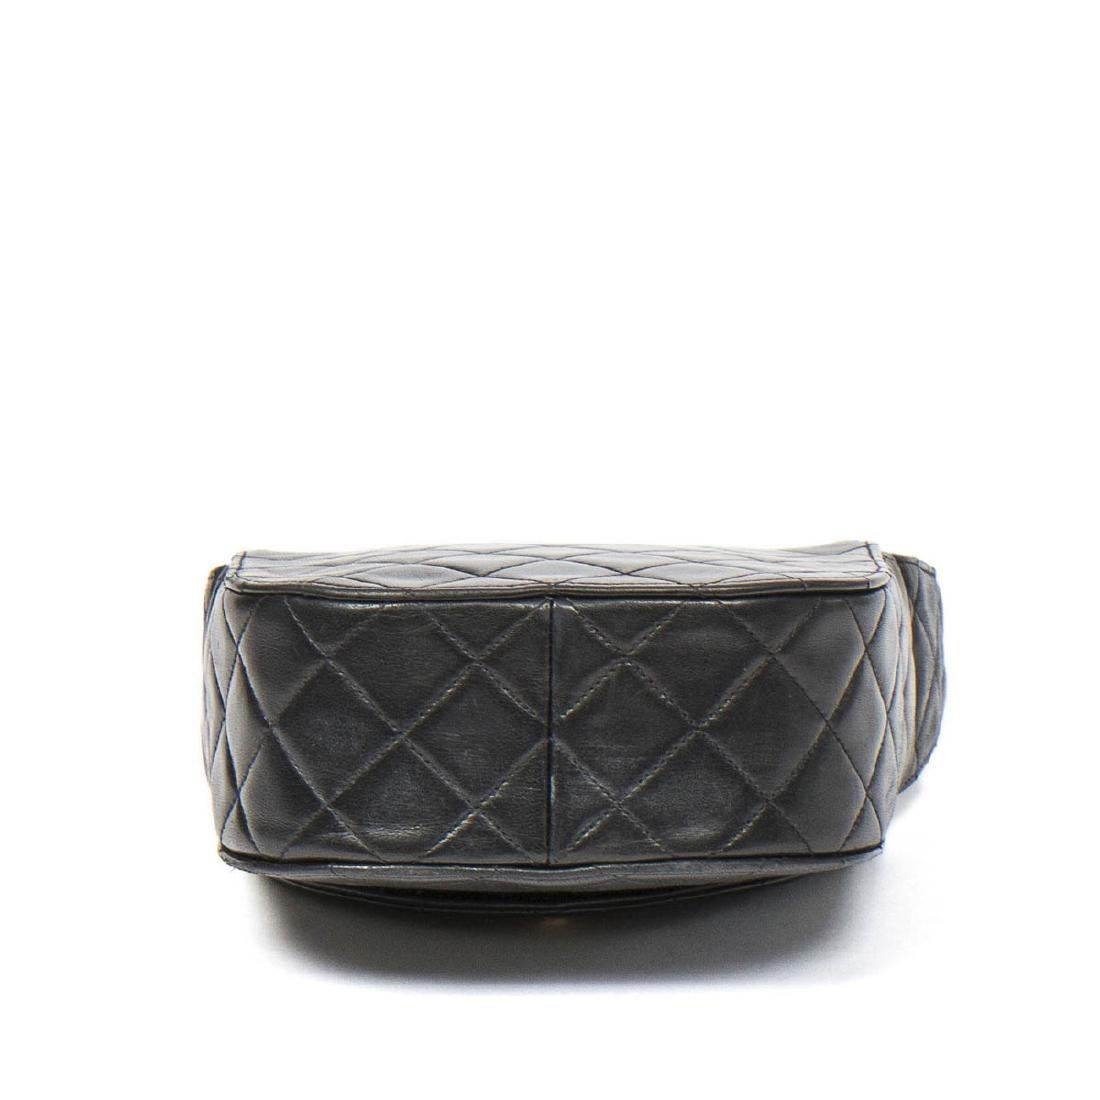 Chanel Make up Hand Bag in Black Quilted Leather - 6